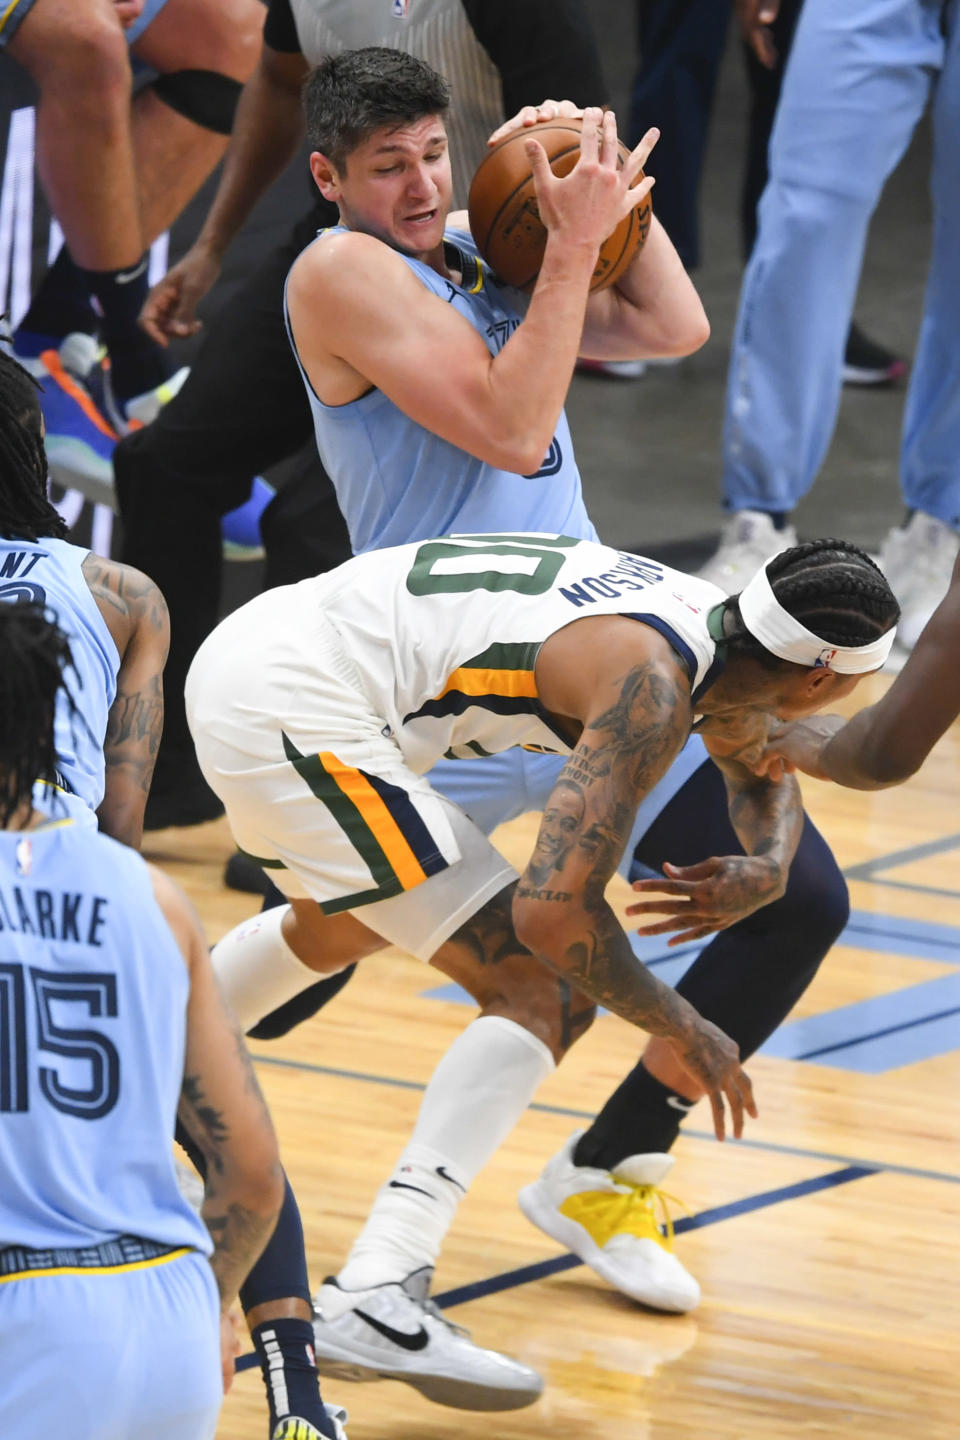 Memphis Grizzlies guard Grayson Allen tries to keep the ball from Utah Jazz guard Jordan Clarkson during the first half of Game 3 of an NBA basketball first-round playoff series Saturday, May 29, 2021, in Memphis, Tenn. (AP Photo/John Amis)